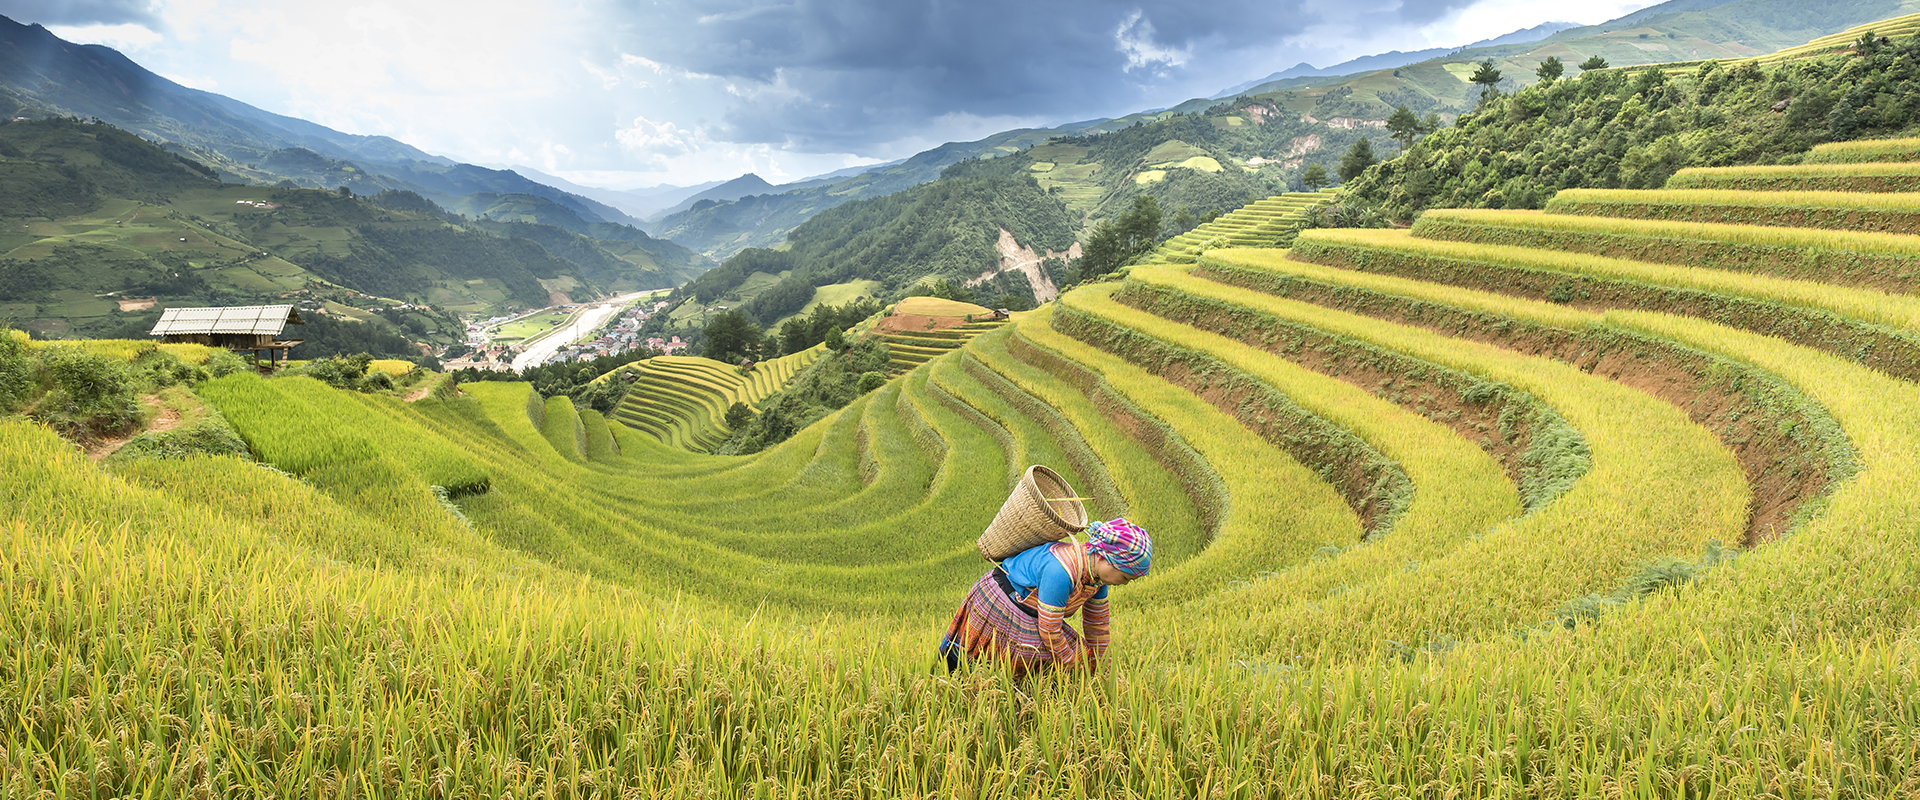 Places To Visit In Mu Cang Chai,Best Time To Visit Mu Cang Chai